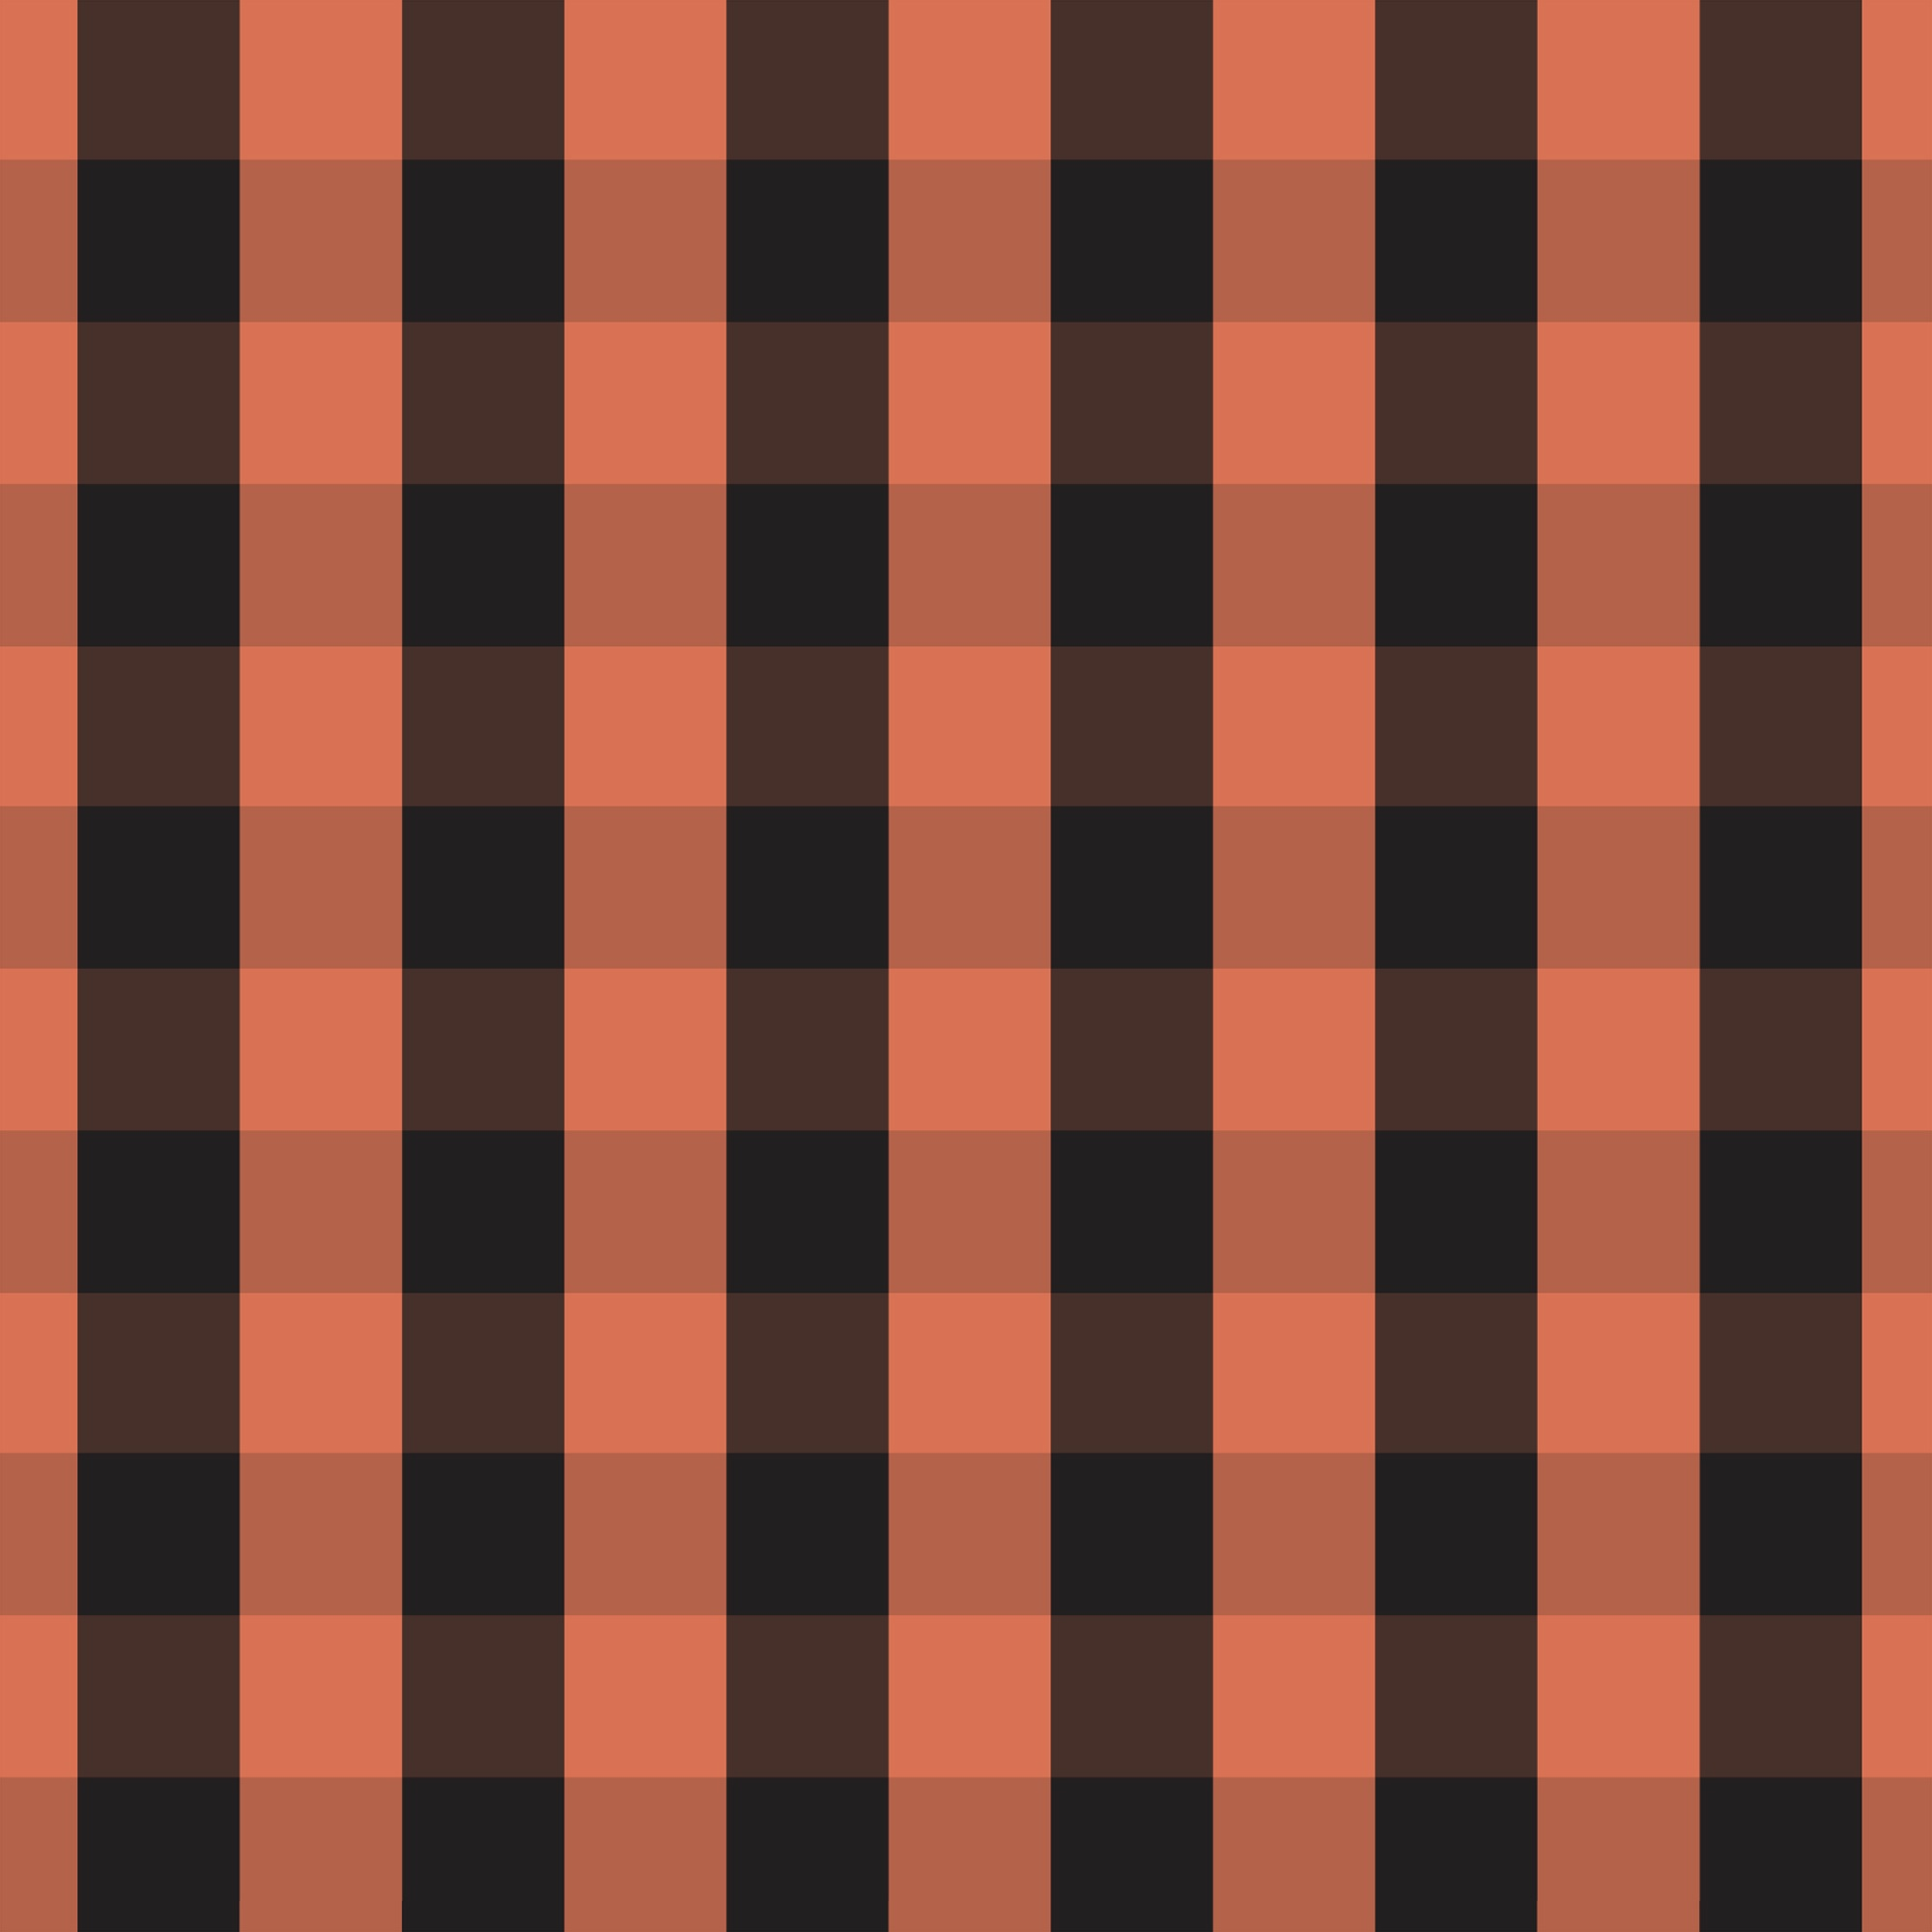 DAVID TEXTILES GINGHAM ORANGE COTTON FABRIC BY THE YARD, 44 INCHES WIDE